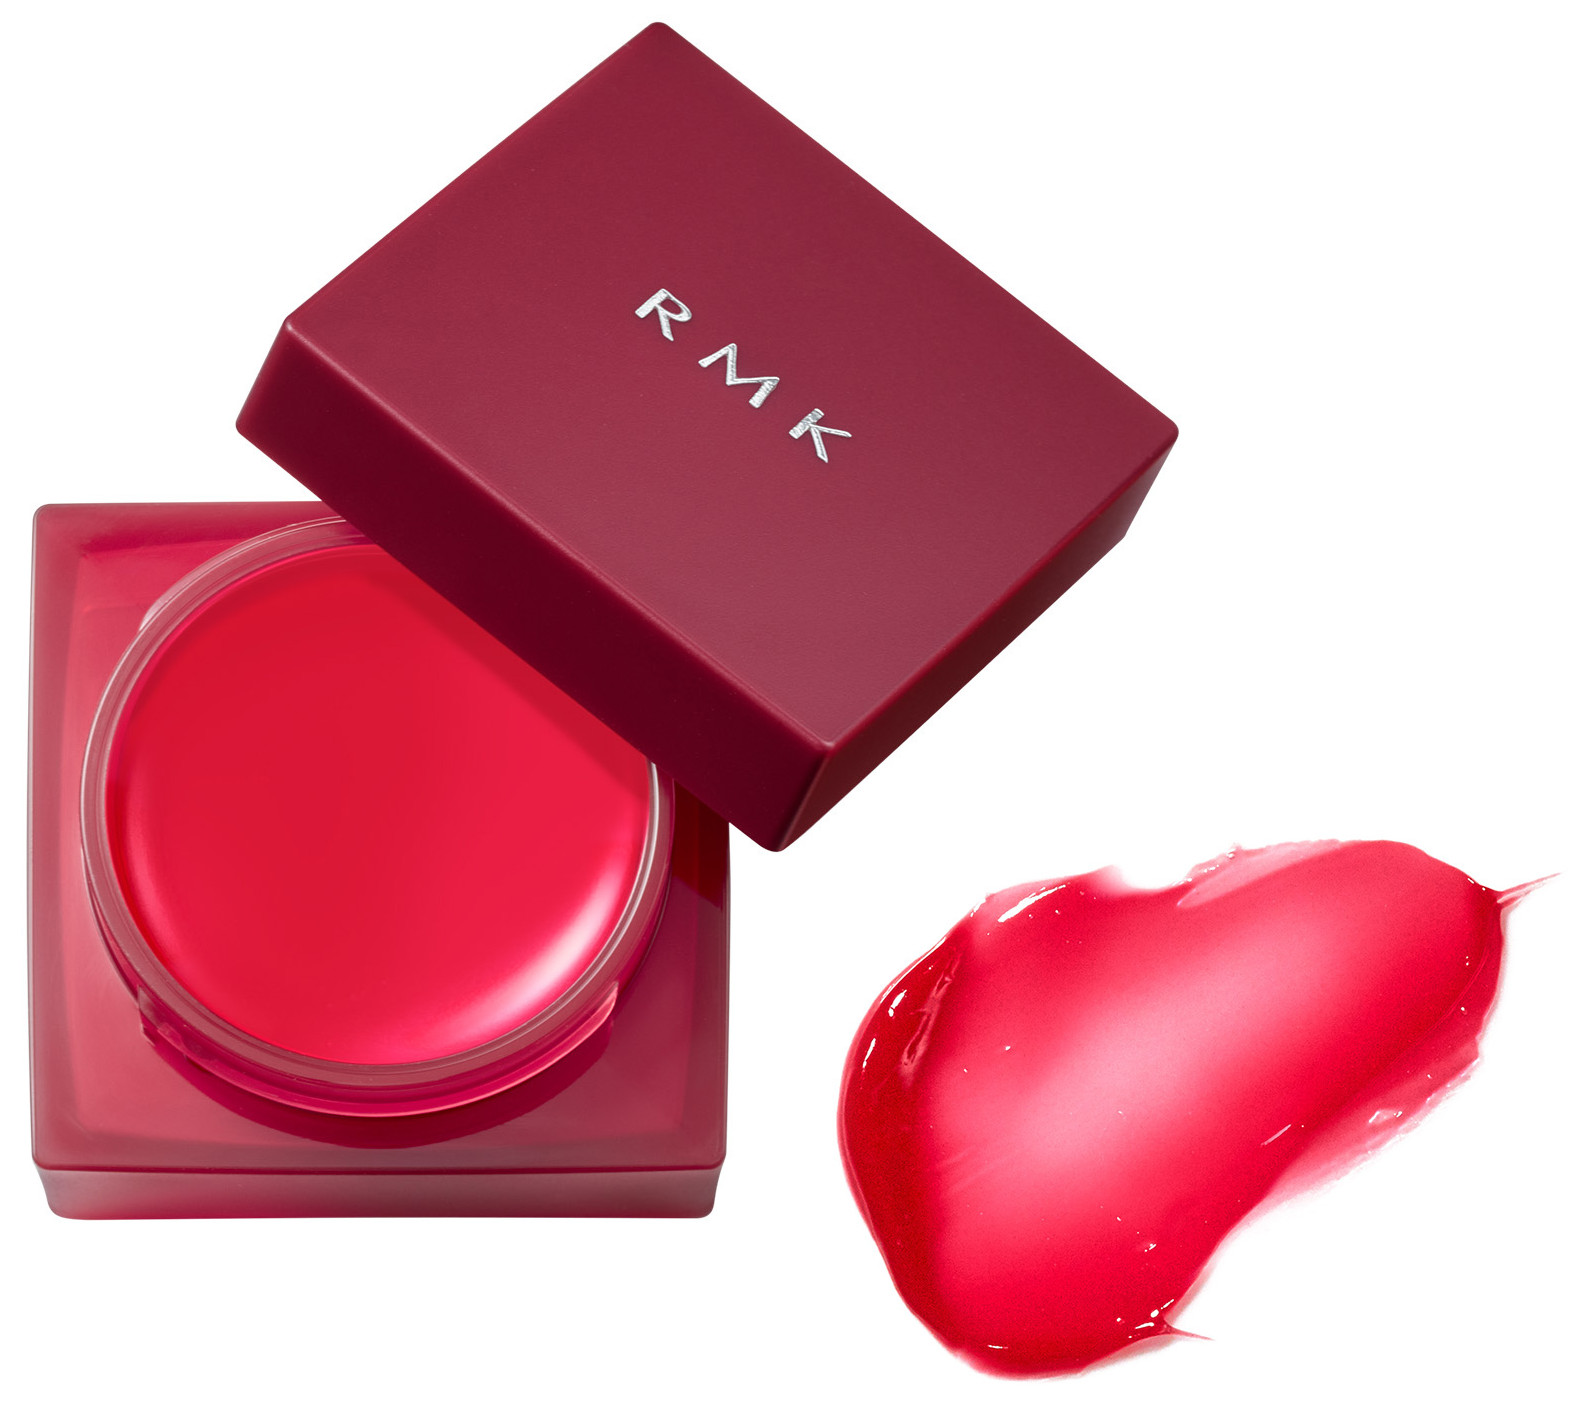 RMK Autumn Winter Collection 2020 Edoakane Translucent Gloss